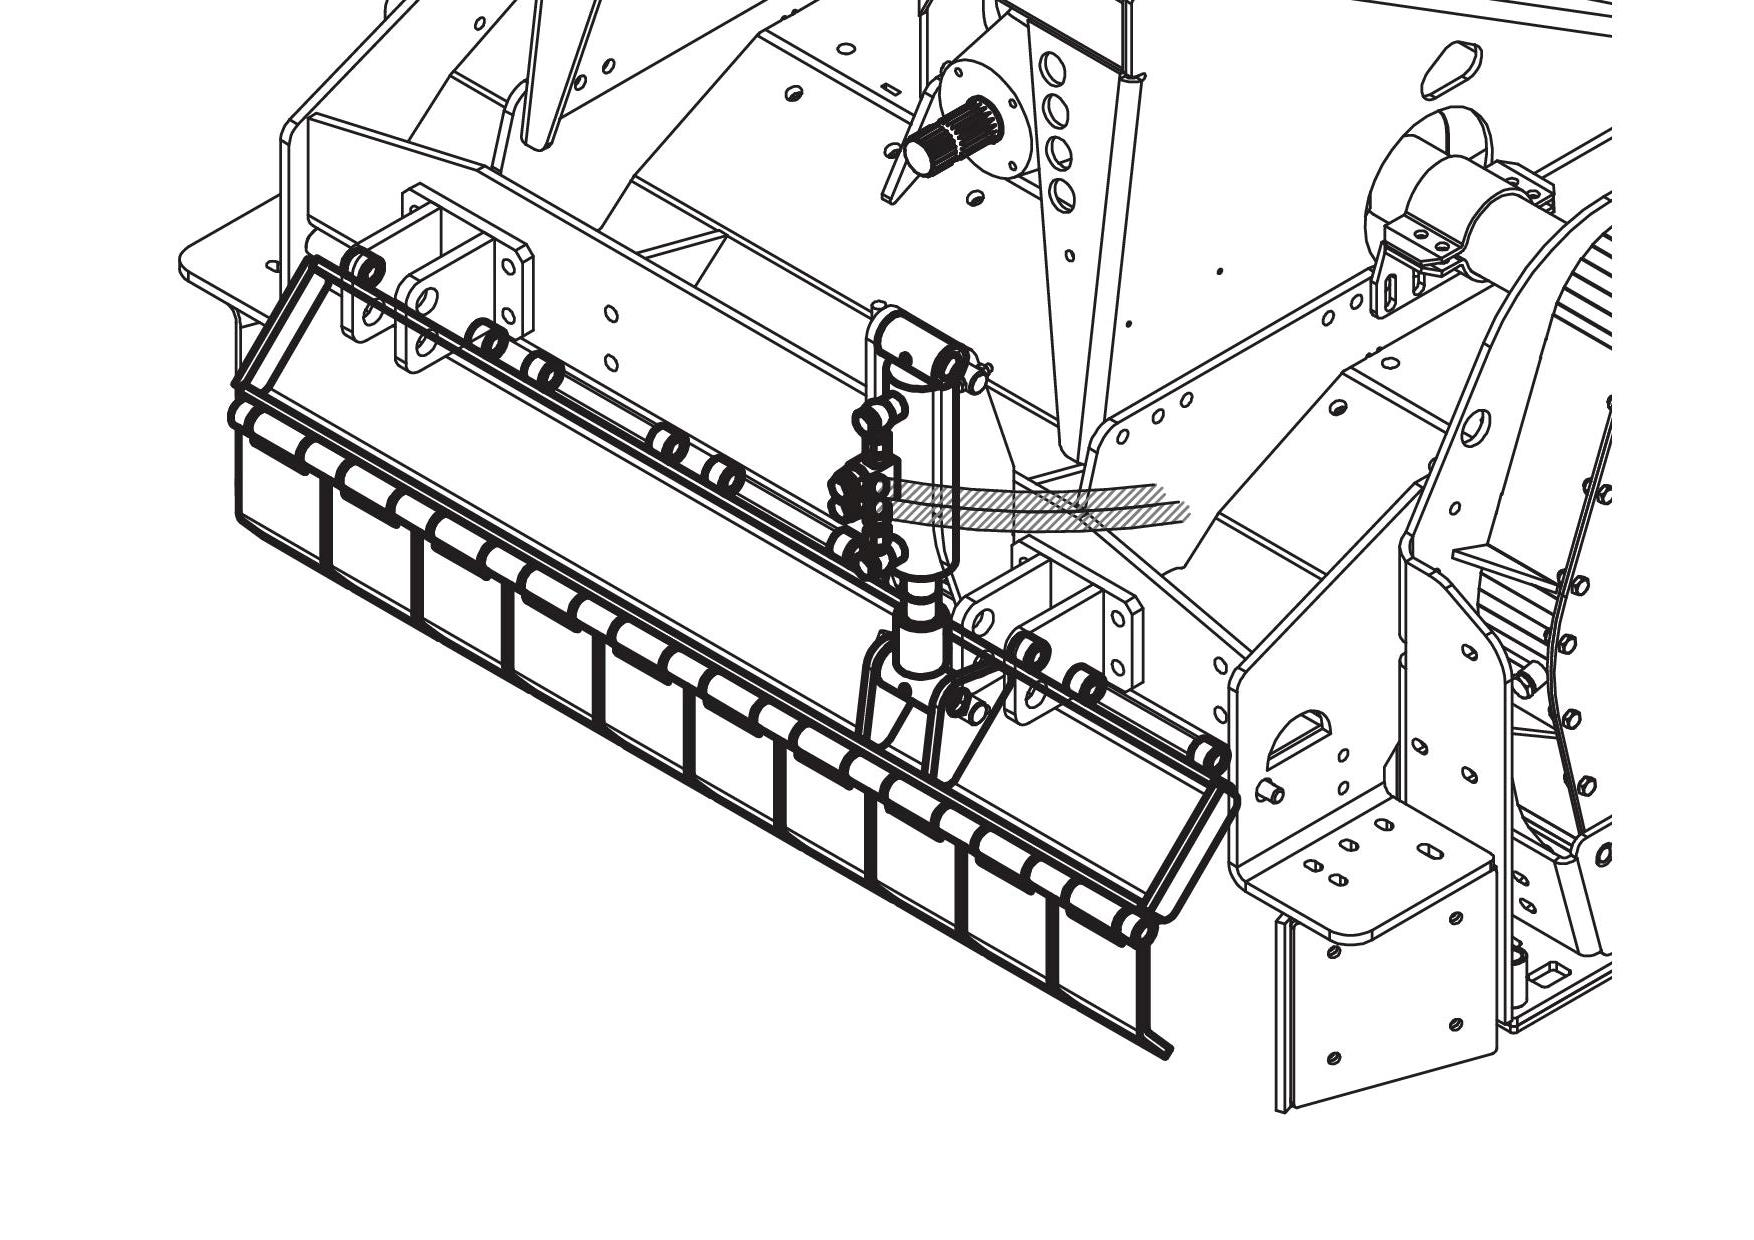 Single Hydraulic Jack For Conveyor Front Plate Adjustment Diagram